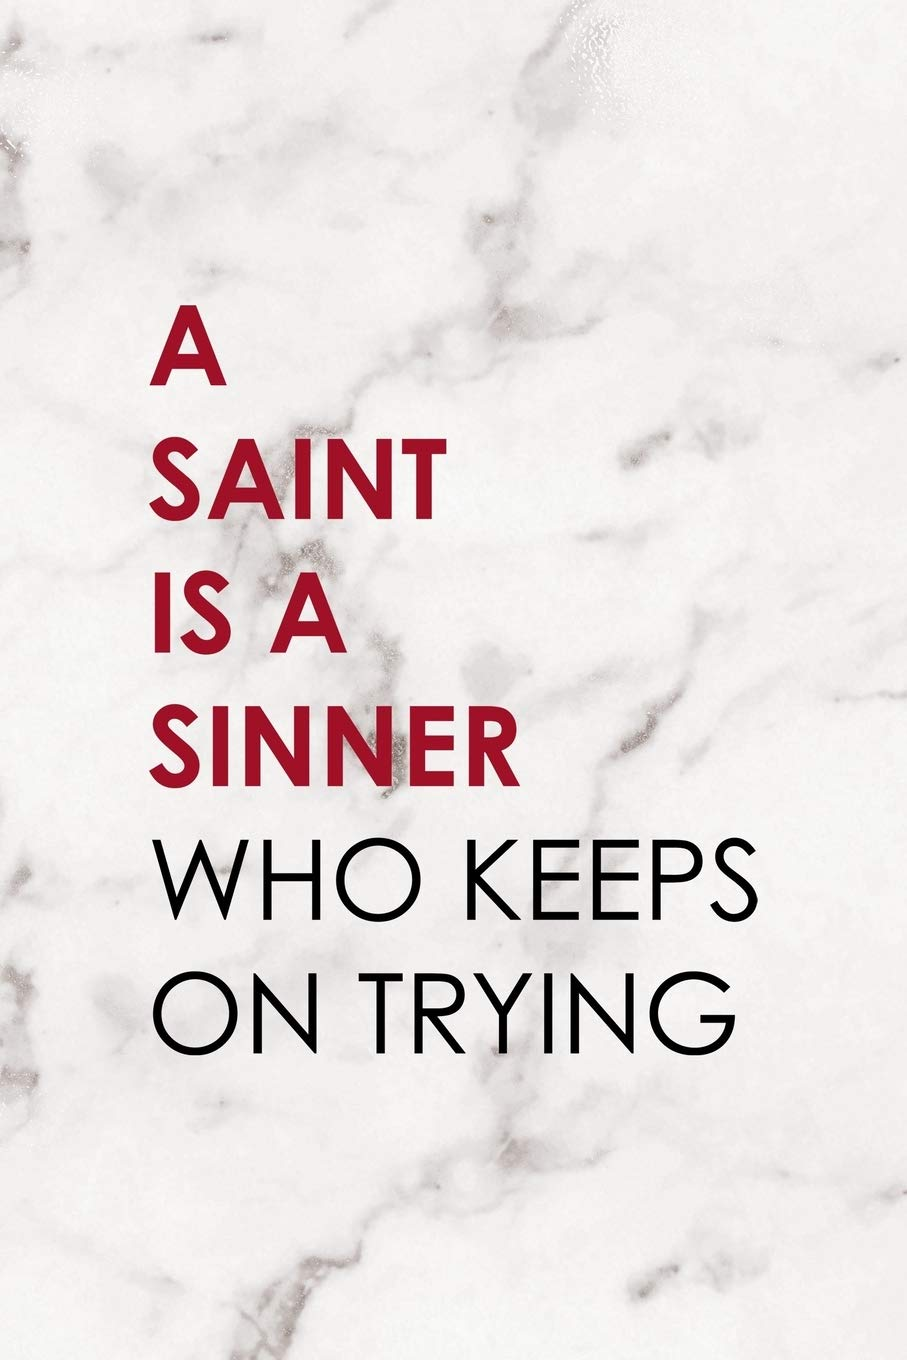 Buy A Saint Is A Sinner Who Keeps On Trying Notebook Journal Composition Blank Lined Diary Notepad 120 Pages Paperback Marble Sinner Book Online At Low Prices In India A Saint